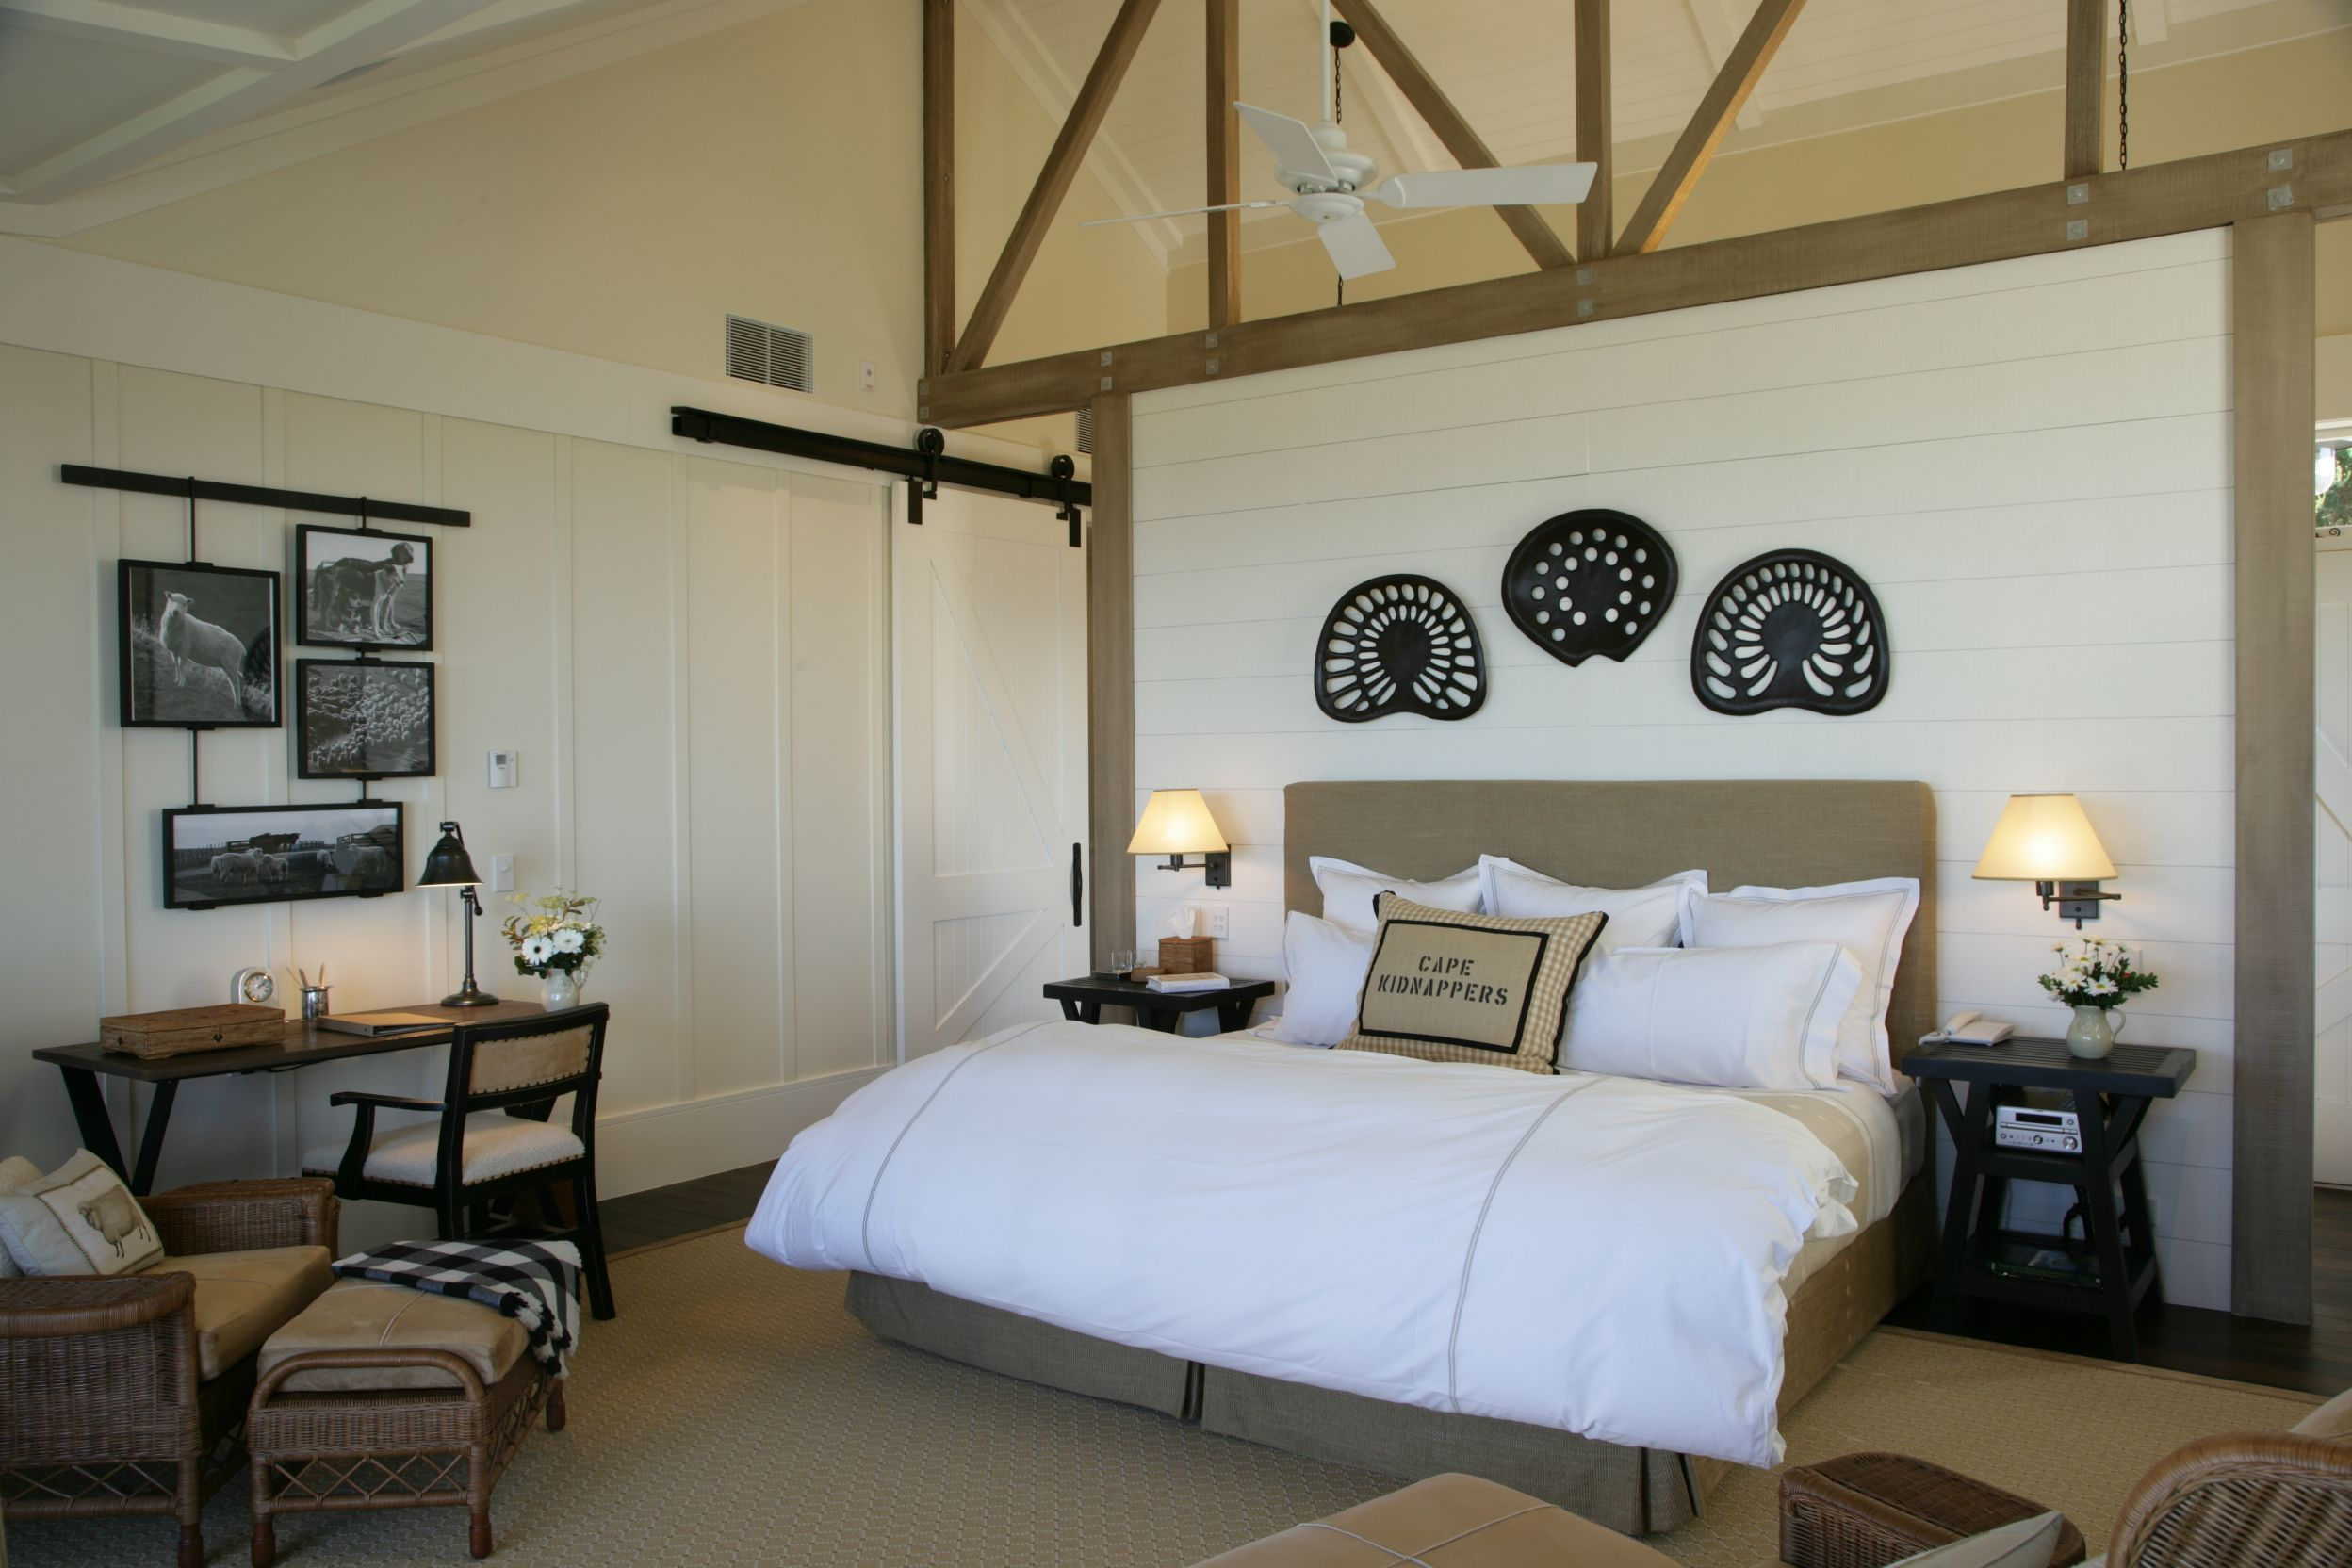 Room at Cape Kidnappers, New Zealand ©Farm at Cape Kidnappers